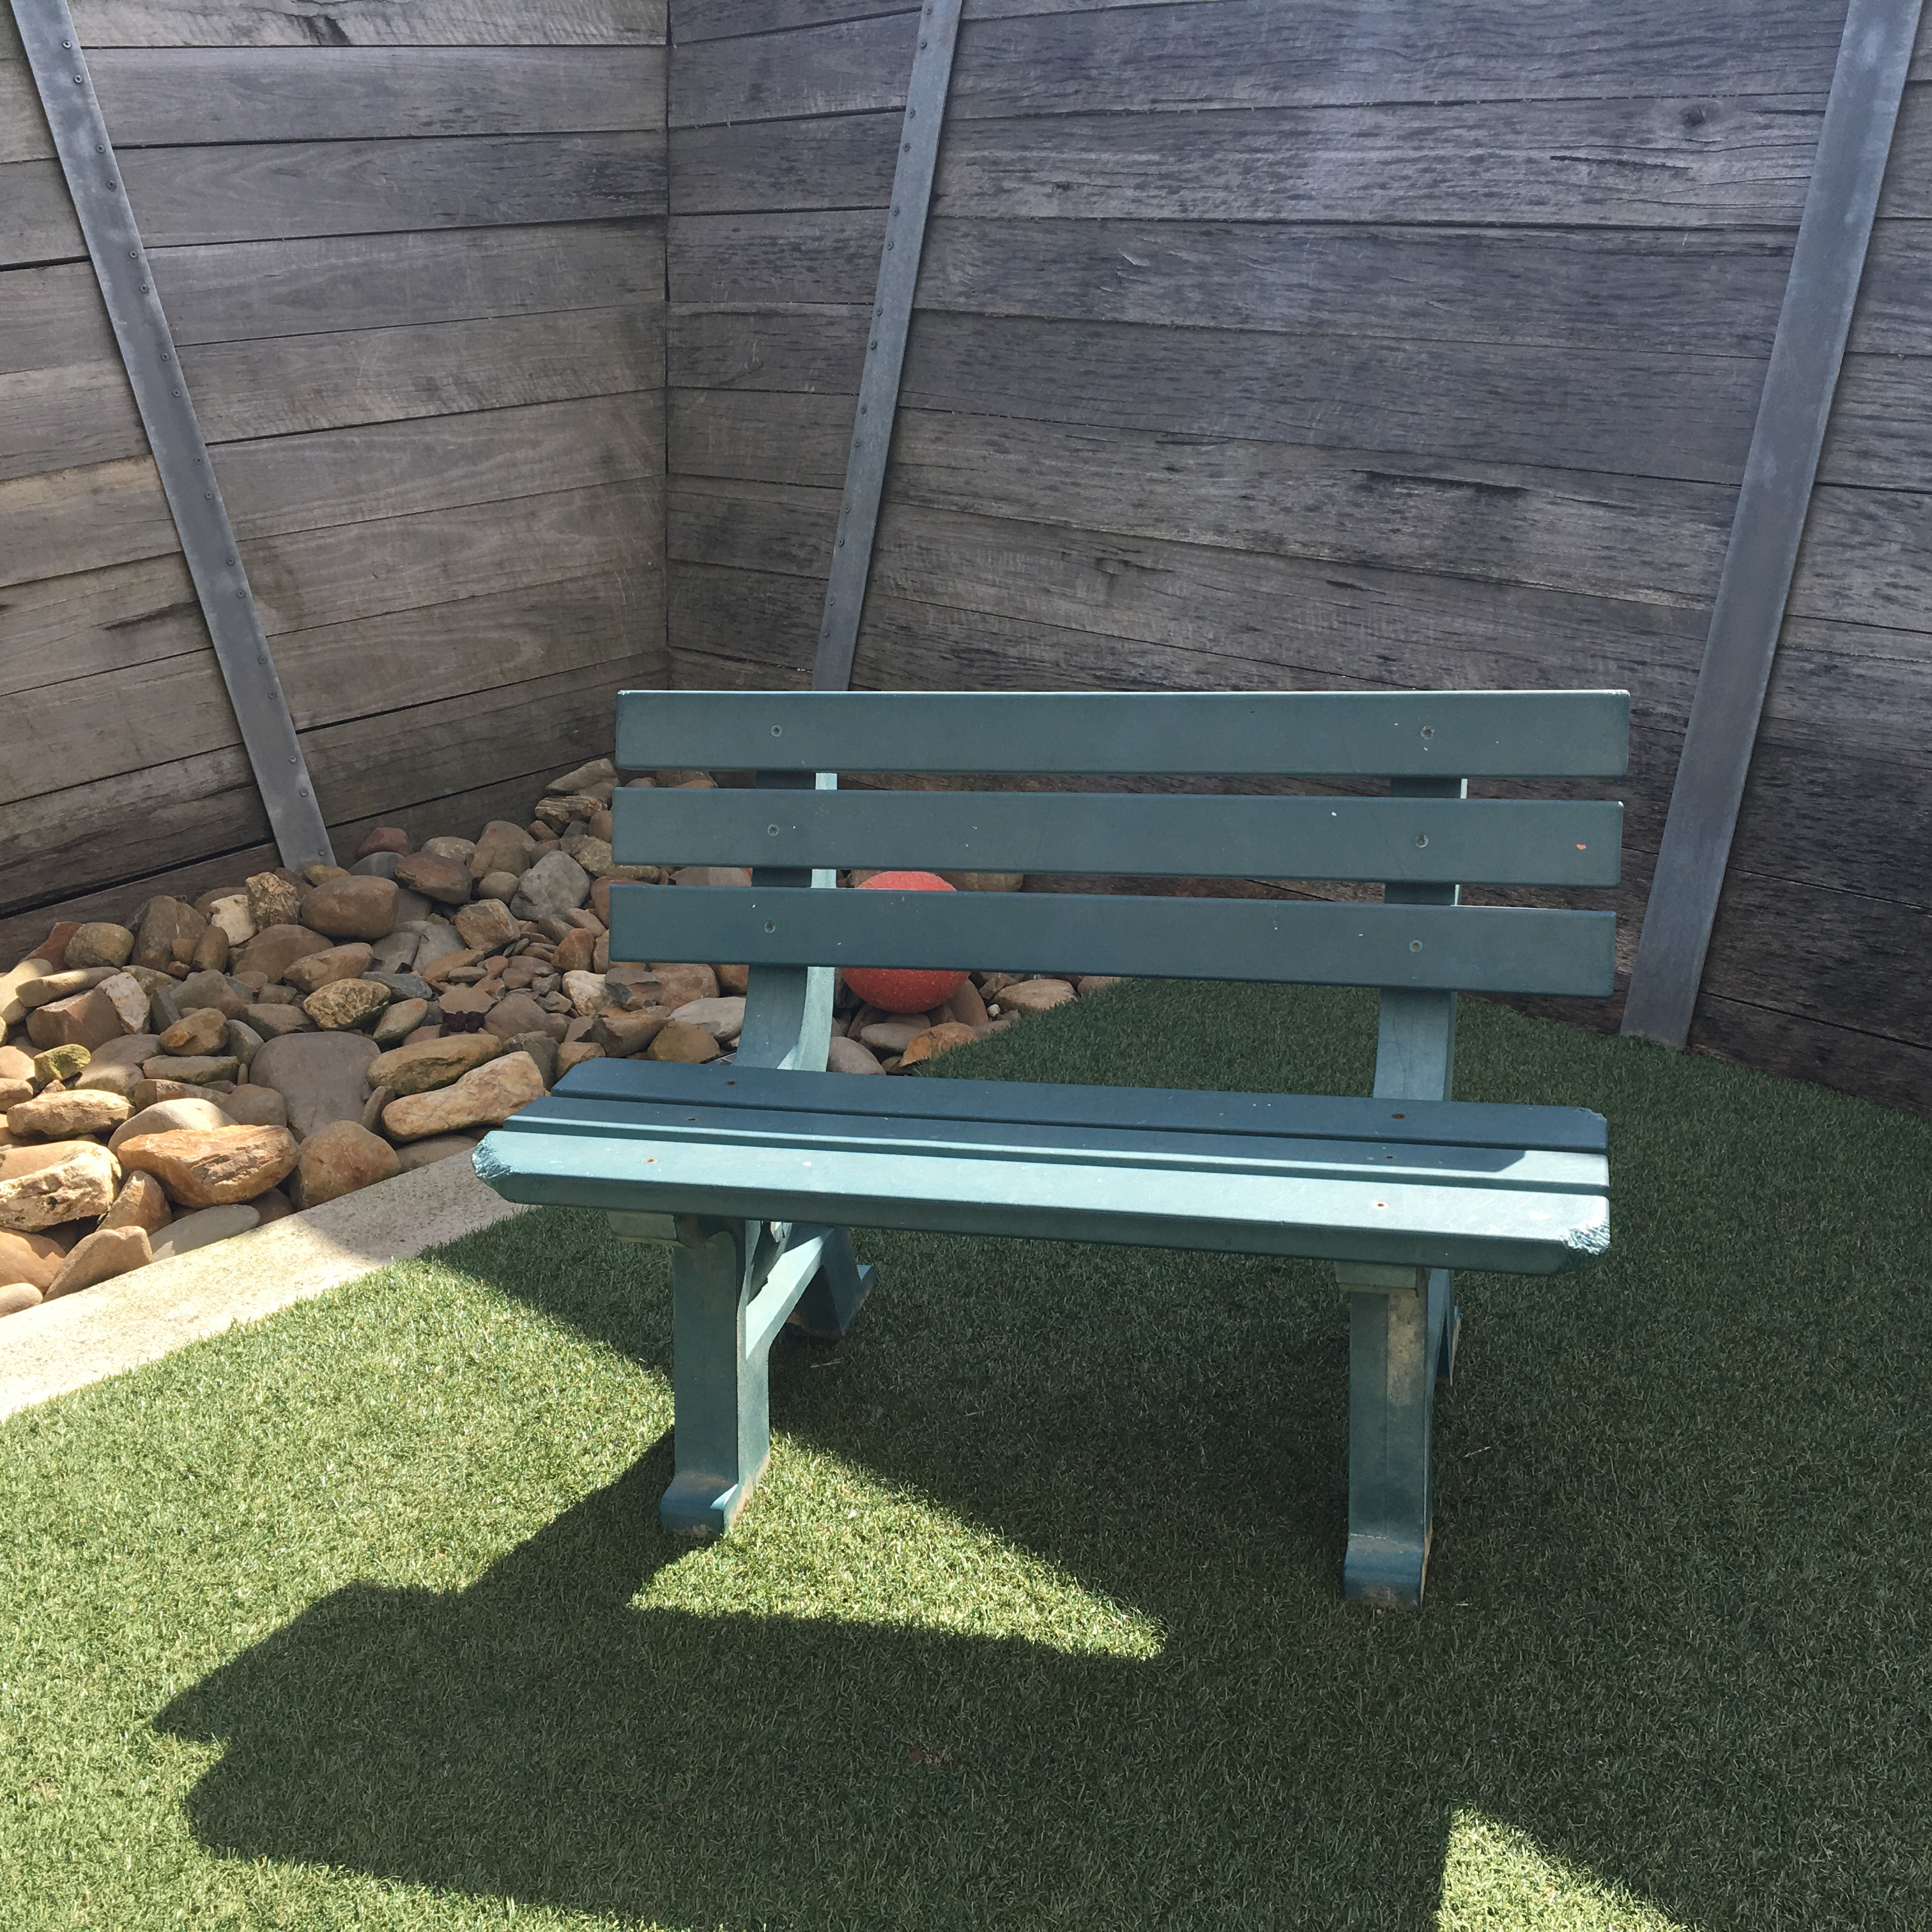 Rspca urban office includes recycled plastic furniture in outdoor enclosures